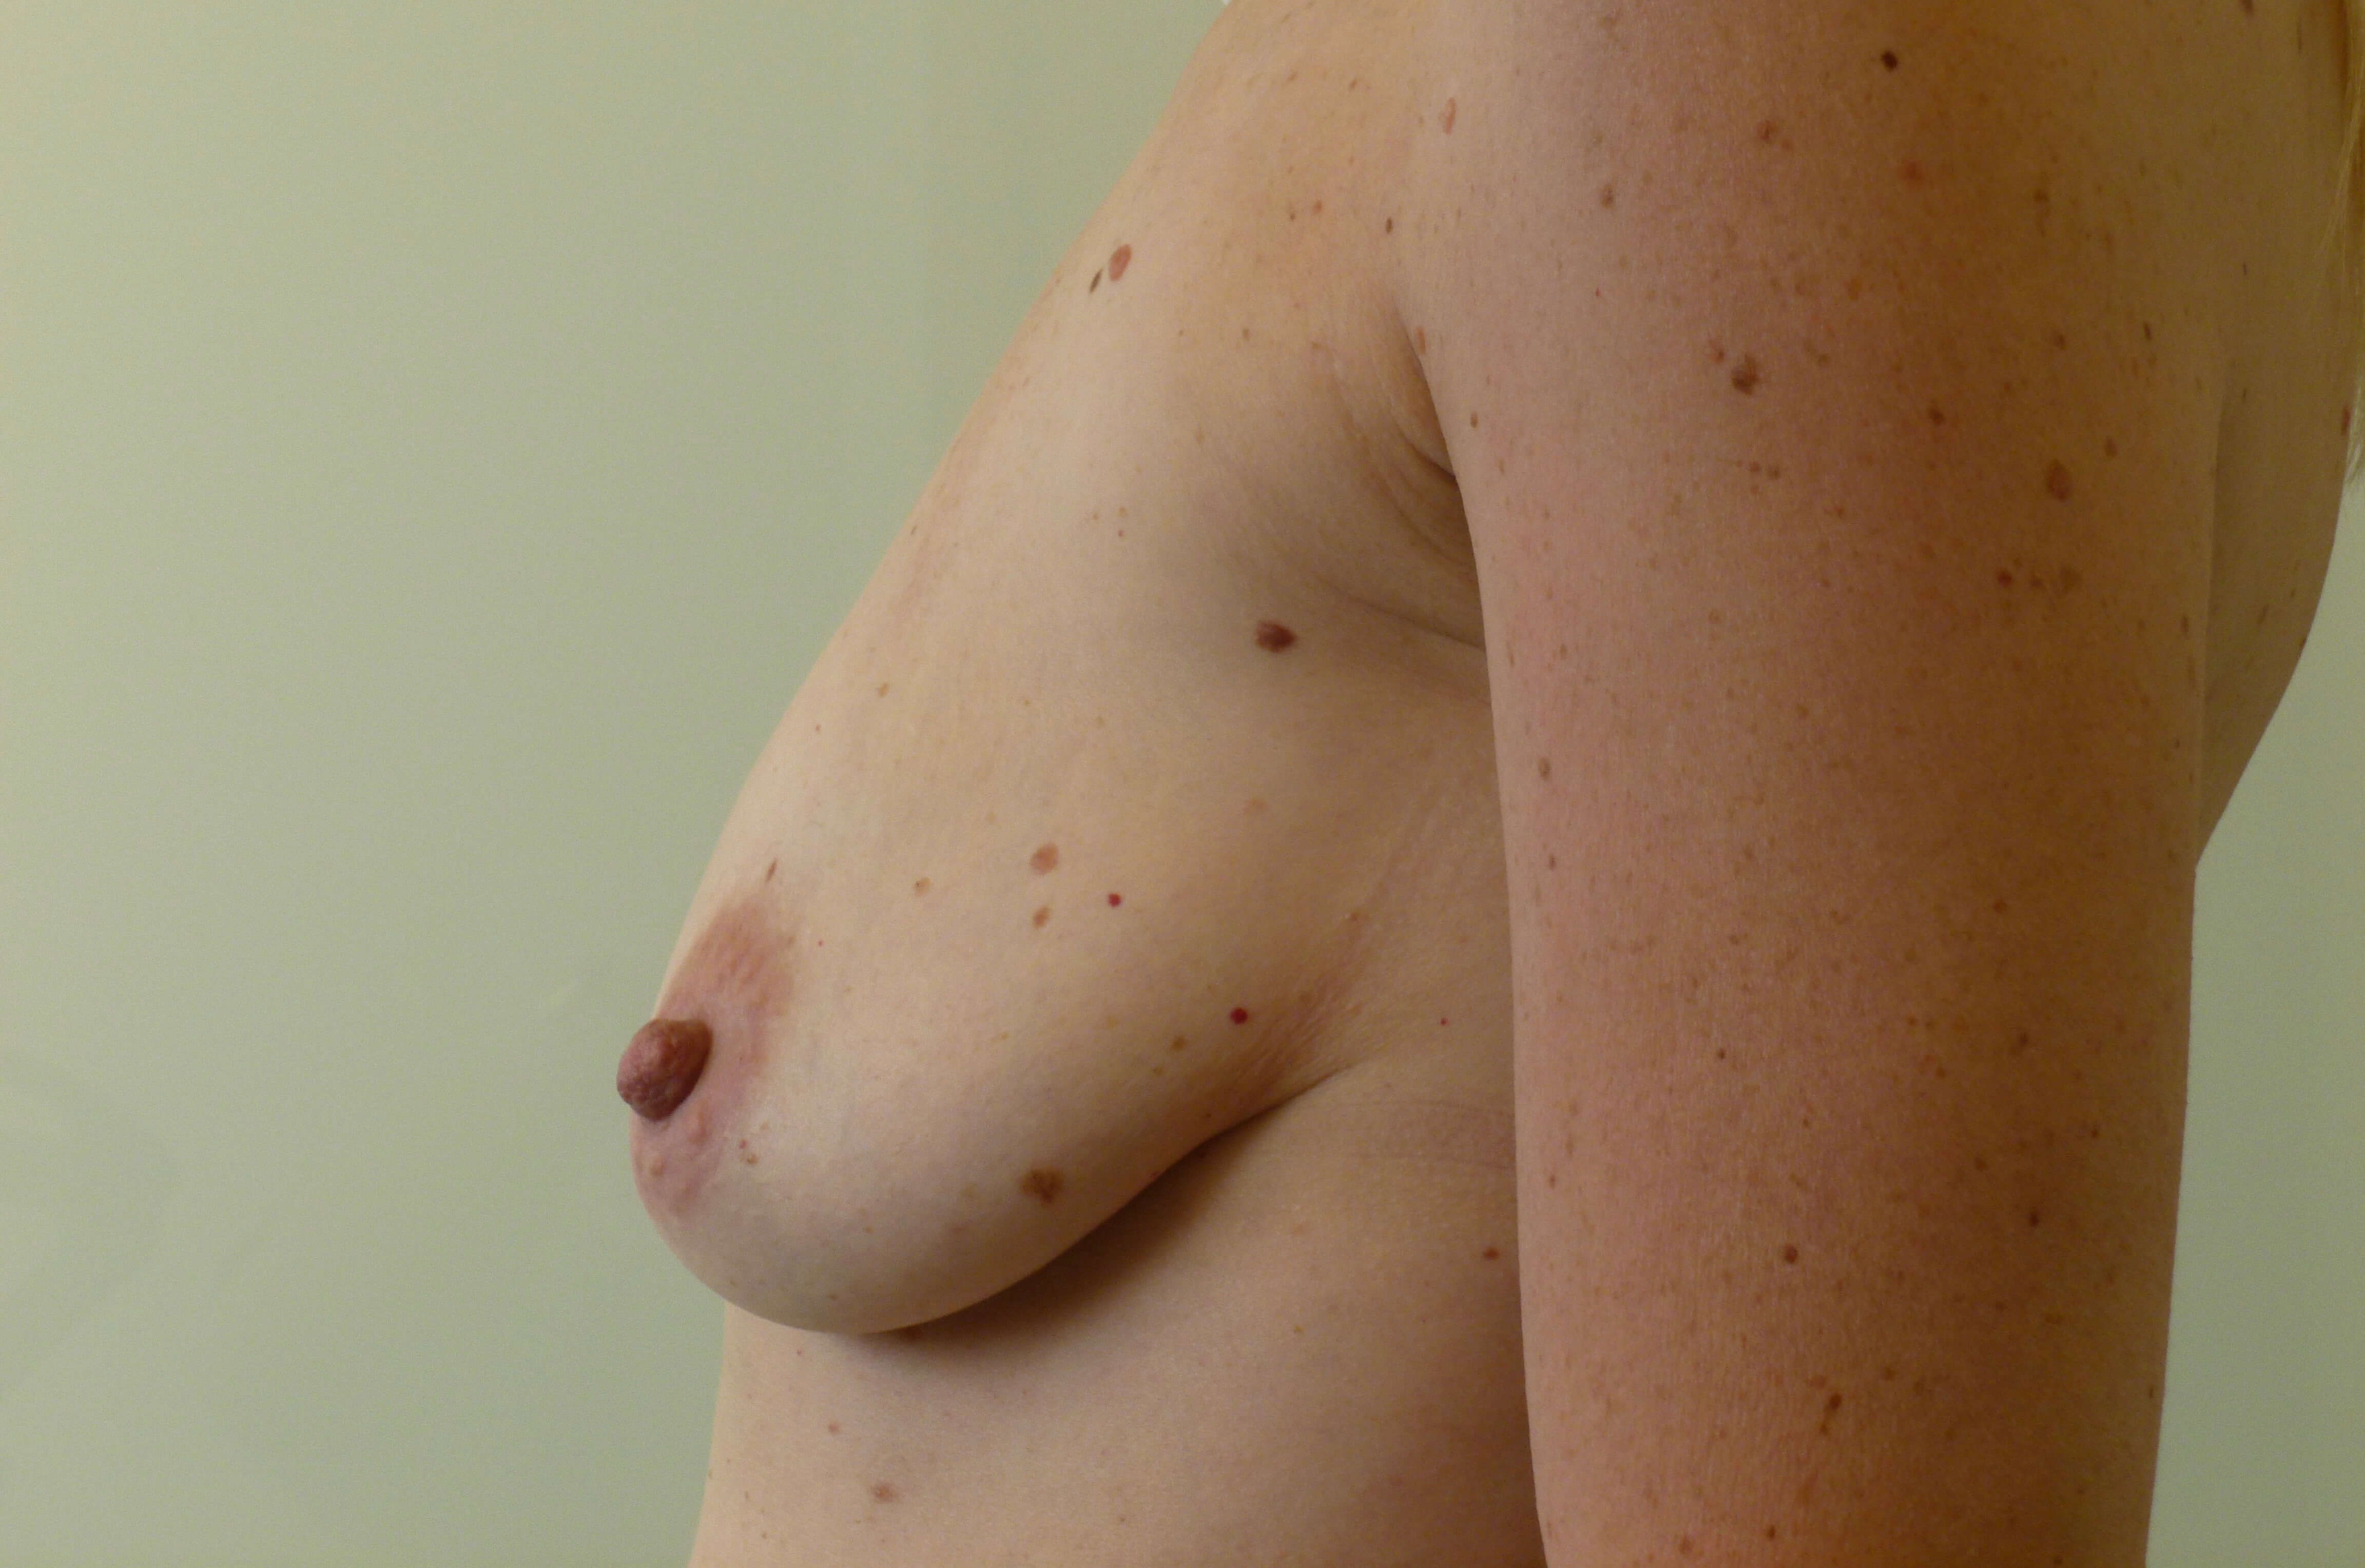 Vertical Lift, Left Side Before: Breast Ptosis